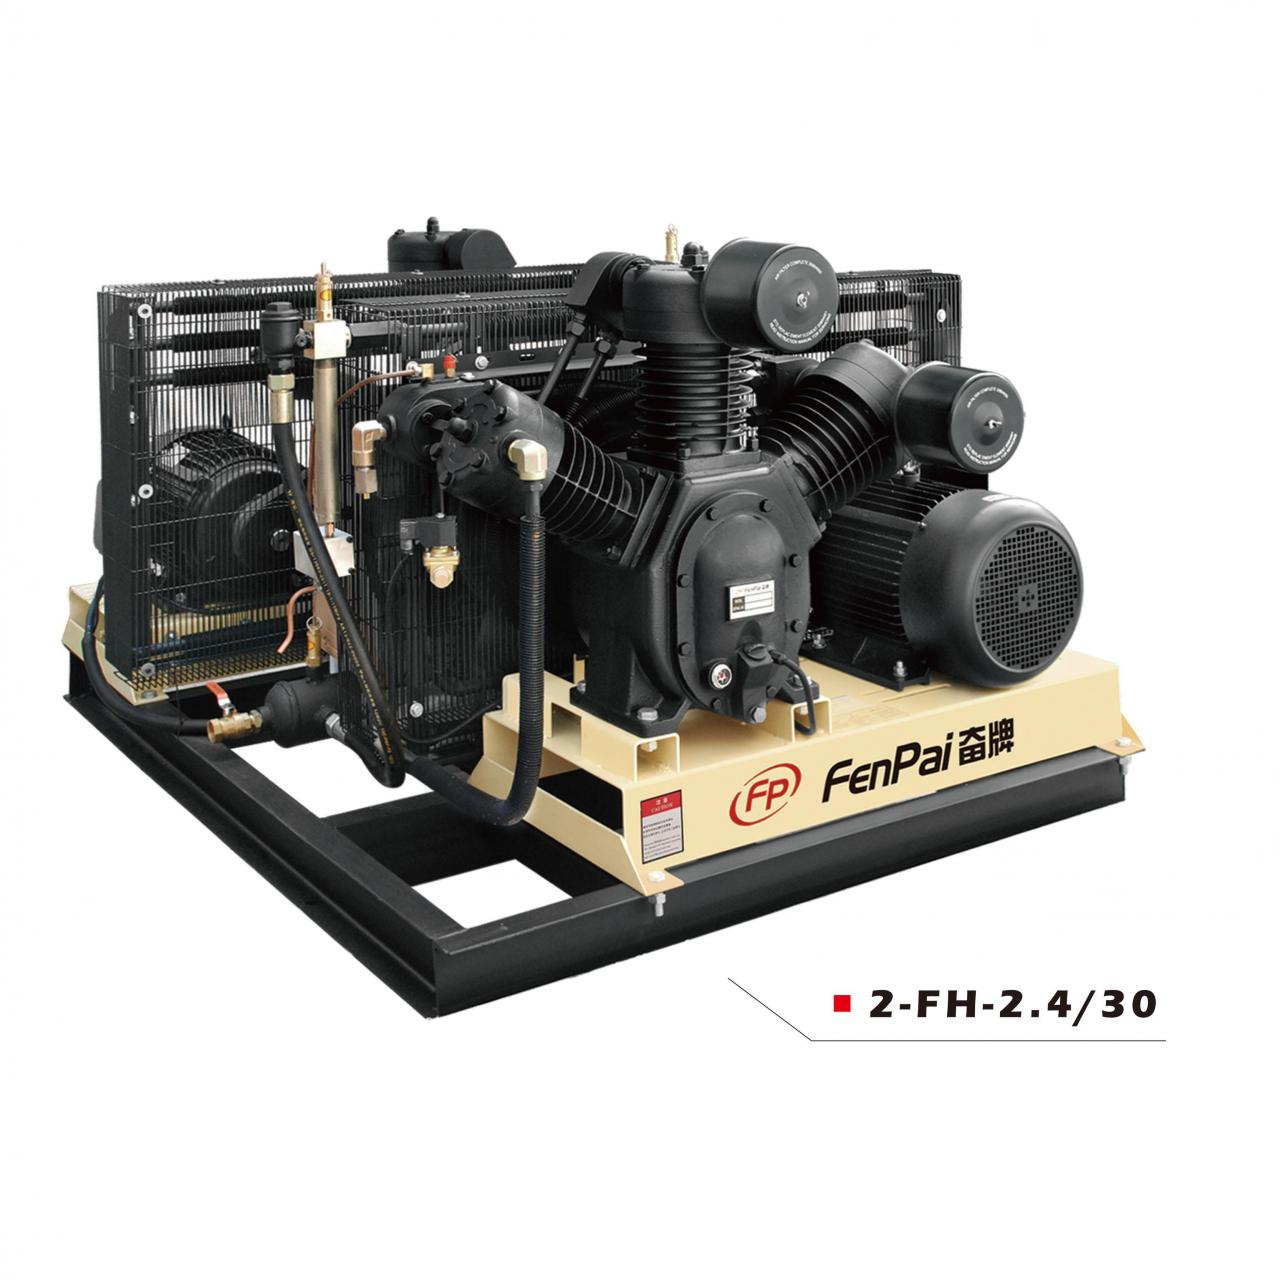 Fenpai air compressor